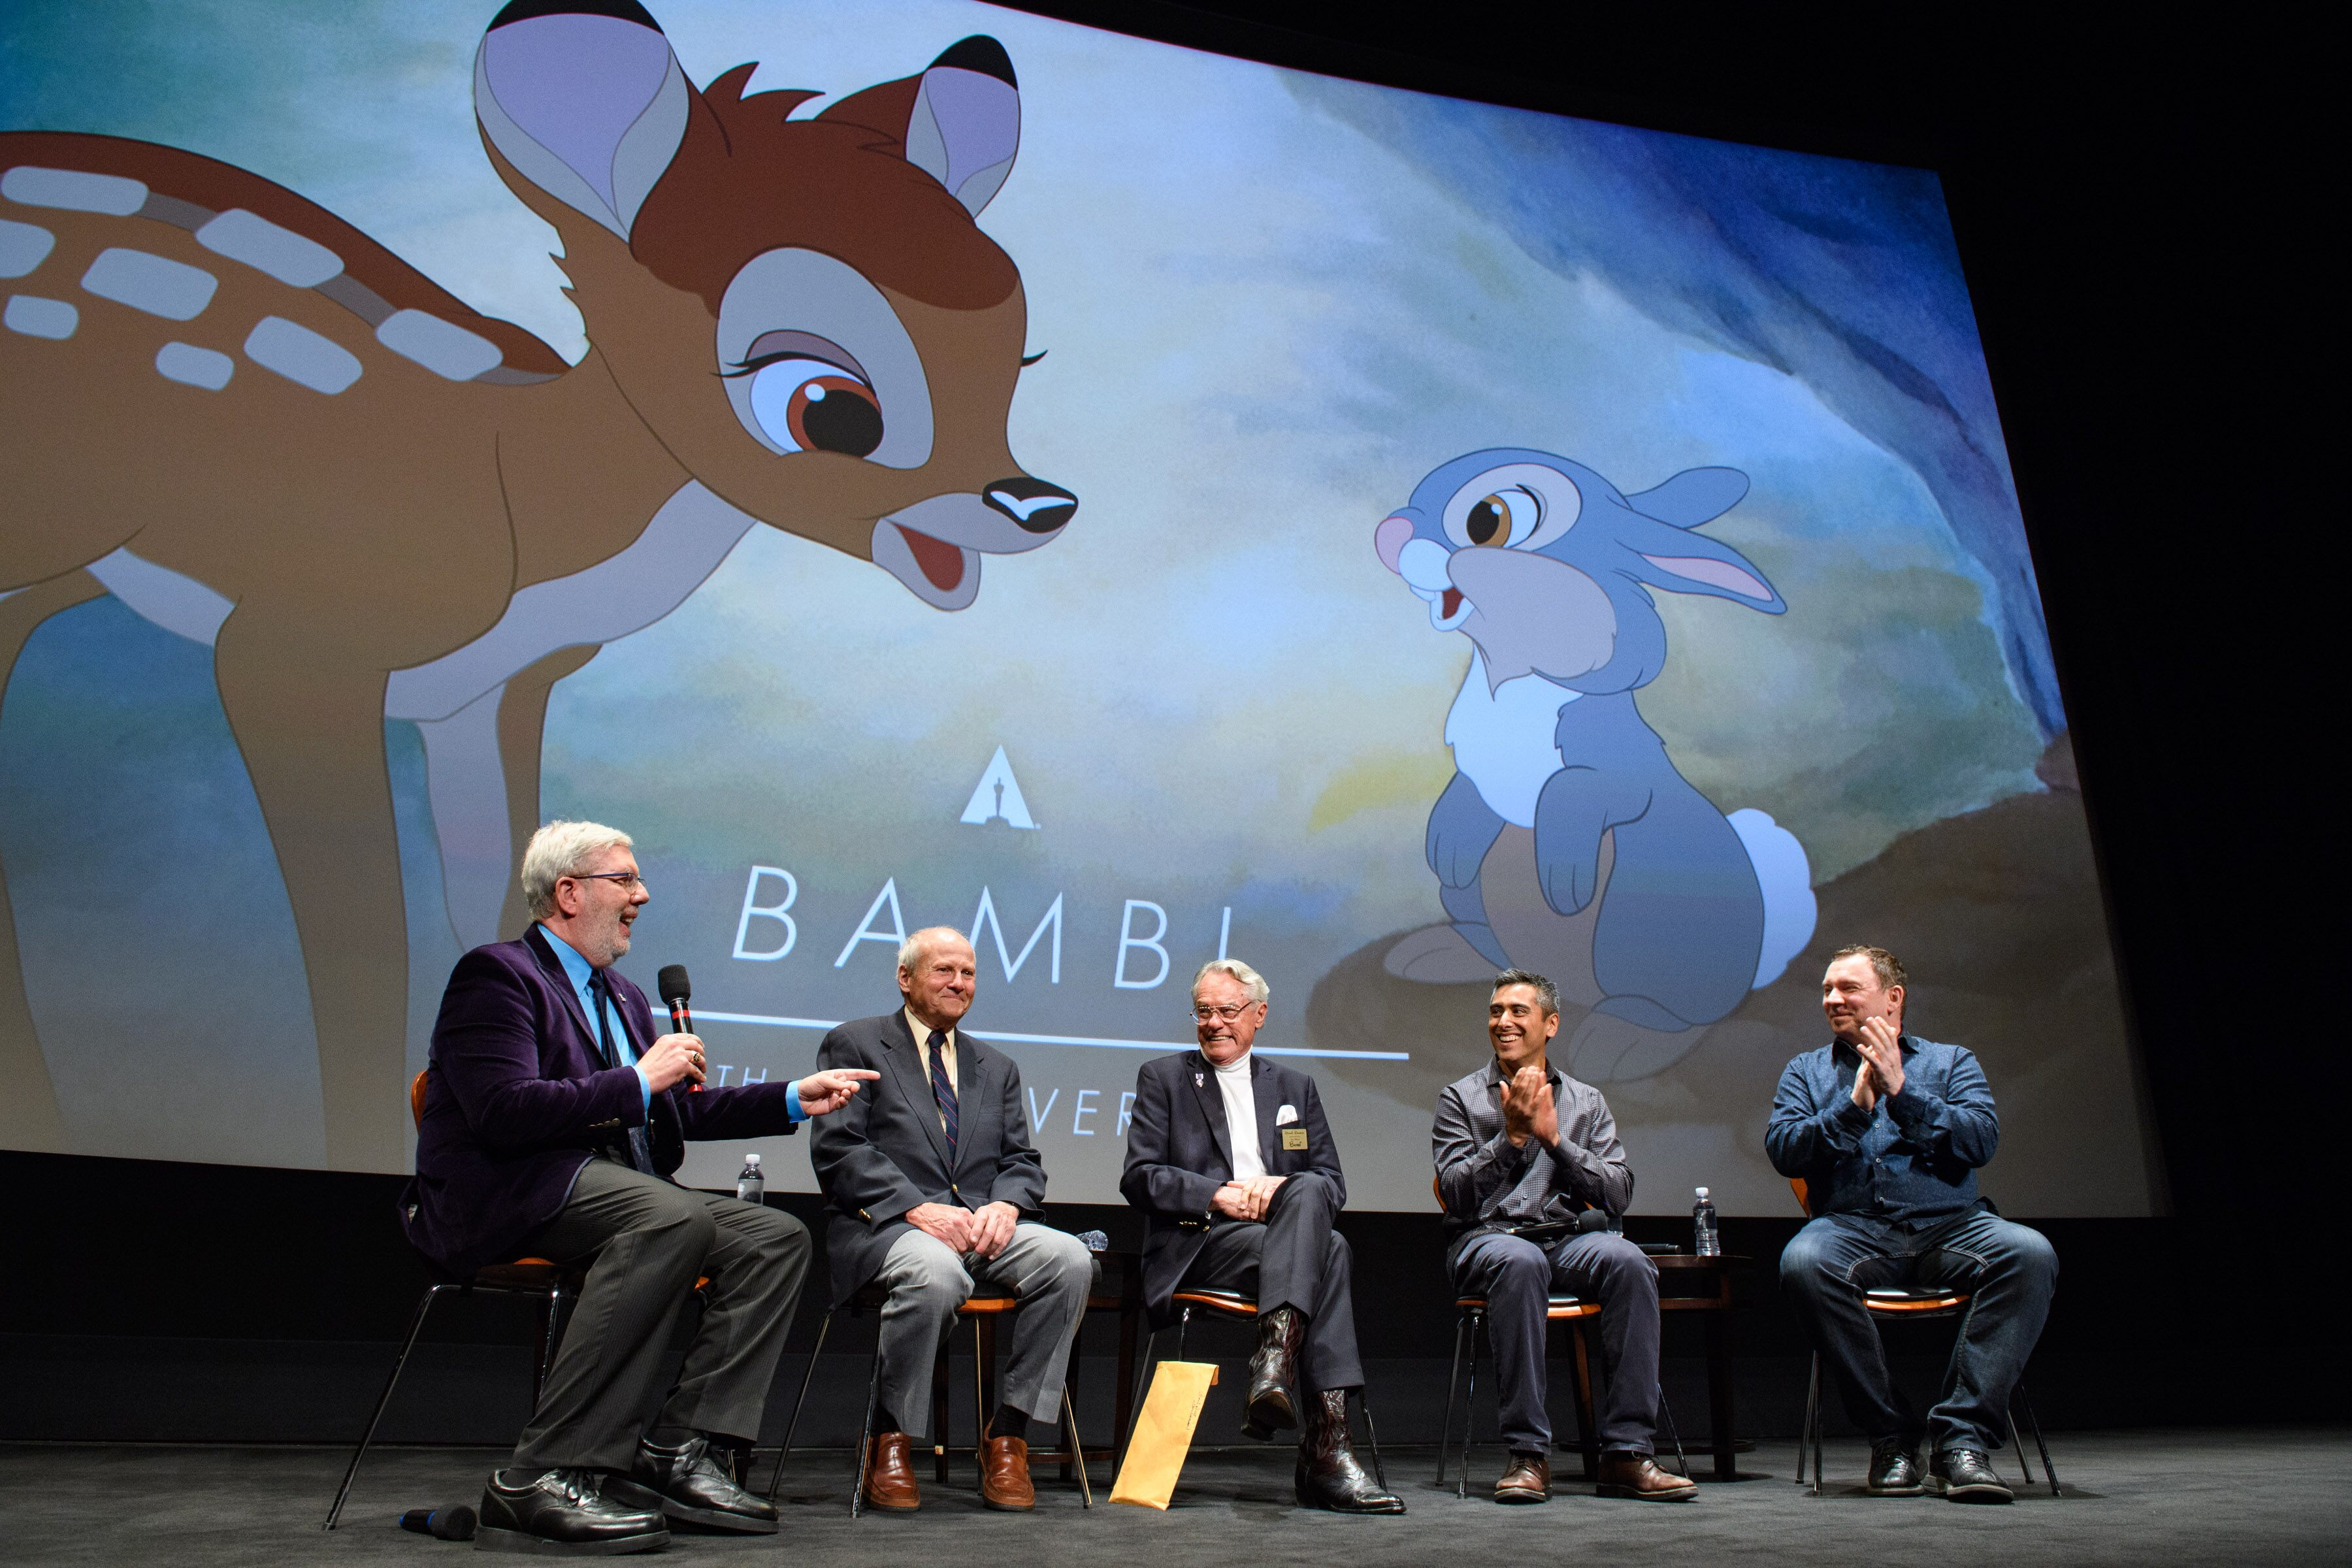 Left to right: host Leonard Maltin, Peter Behn (voice of young Thumper), Donnie Dunagan (voice of young Bambi), Paul Felix (Production Designer at Walt Disney Animation Studios) and Andreas Deja (Disney Legend, Animator)